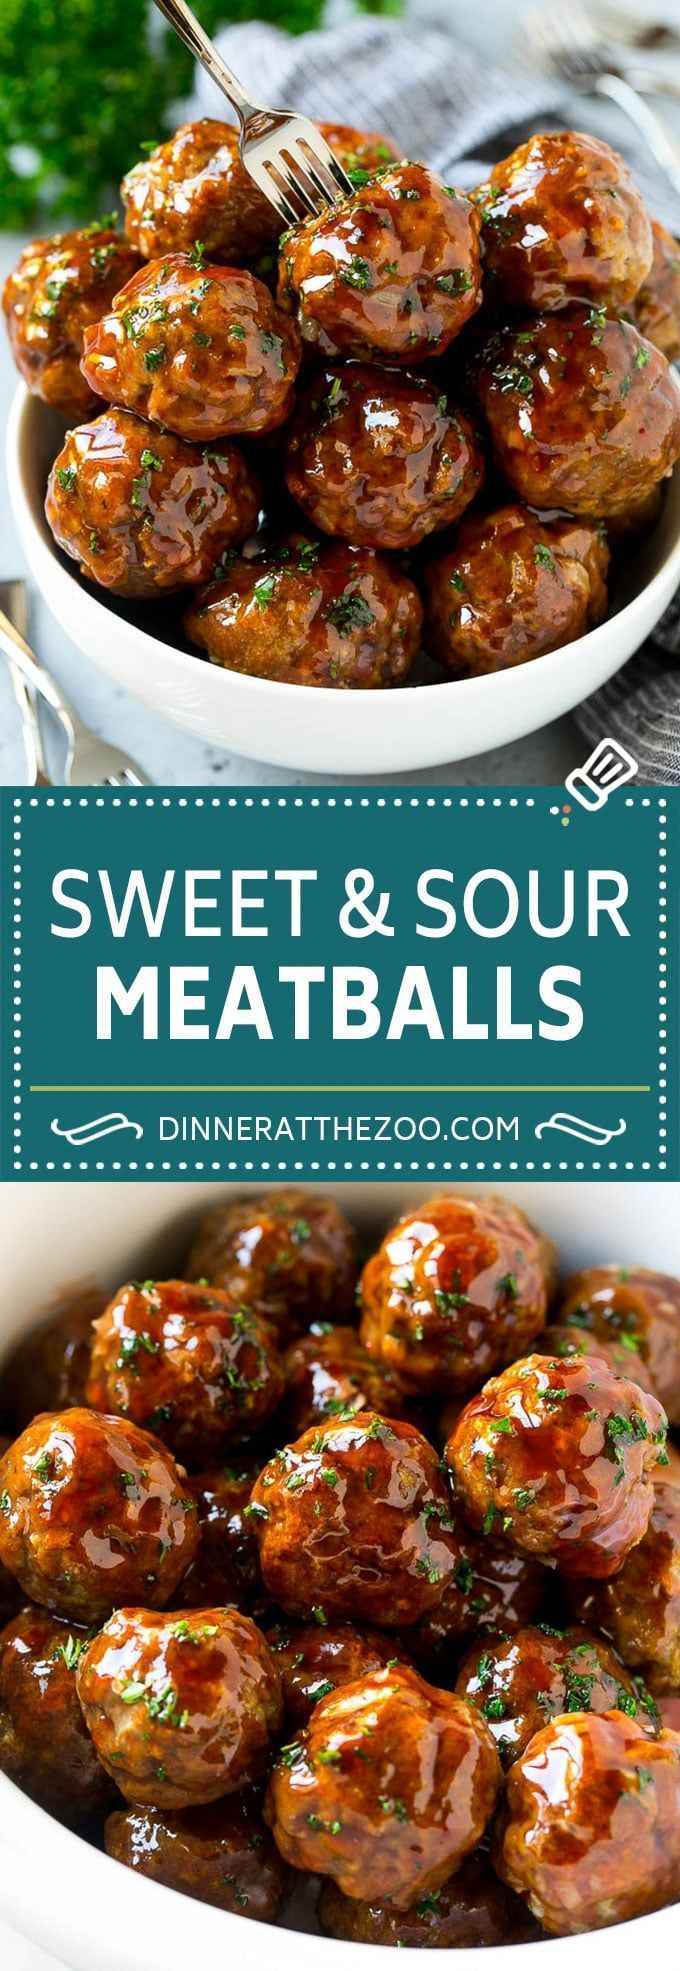 Sweet and Sour Meatballs Recipe | Slow Cooker Meatballs | Crockpot Meatballs | Cocktail Meatballs